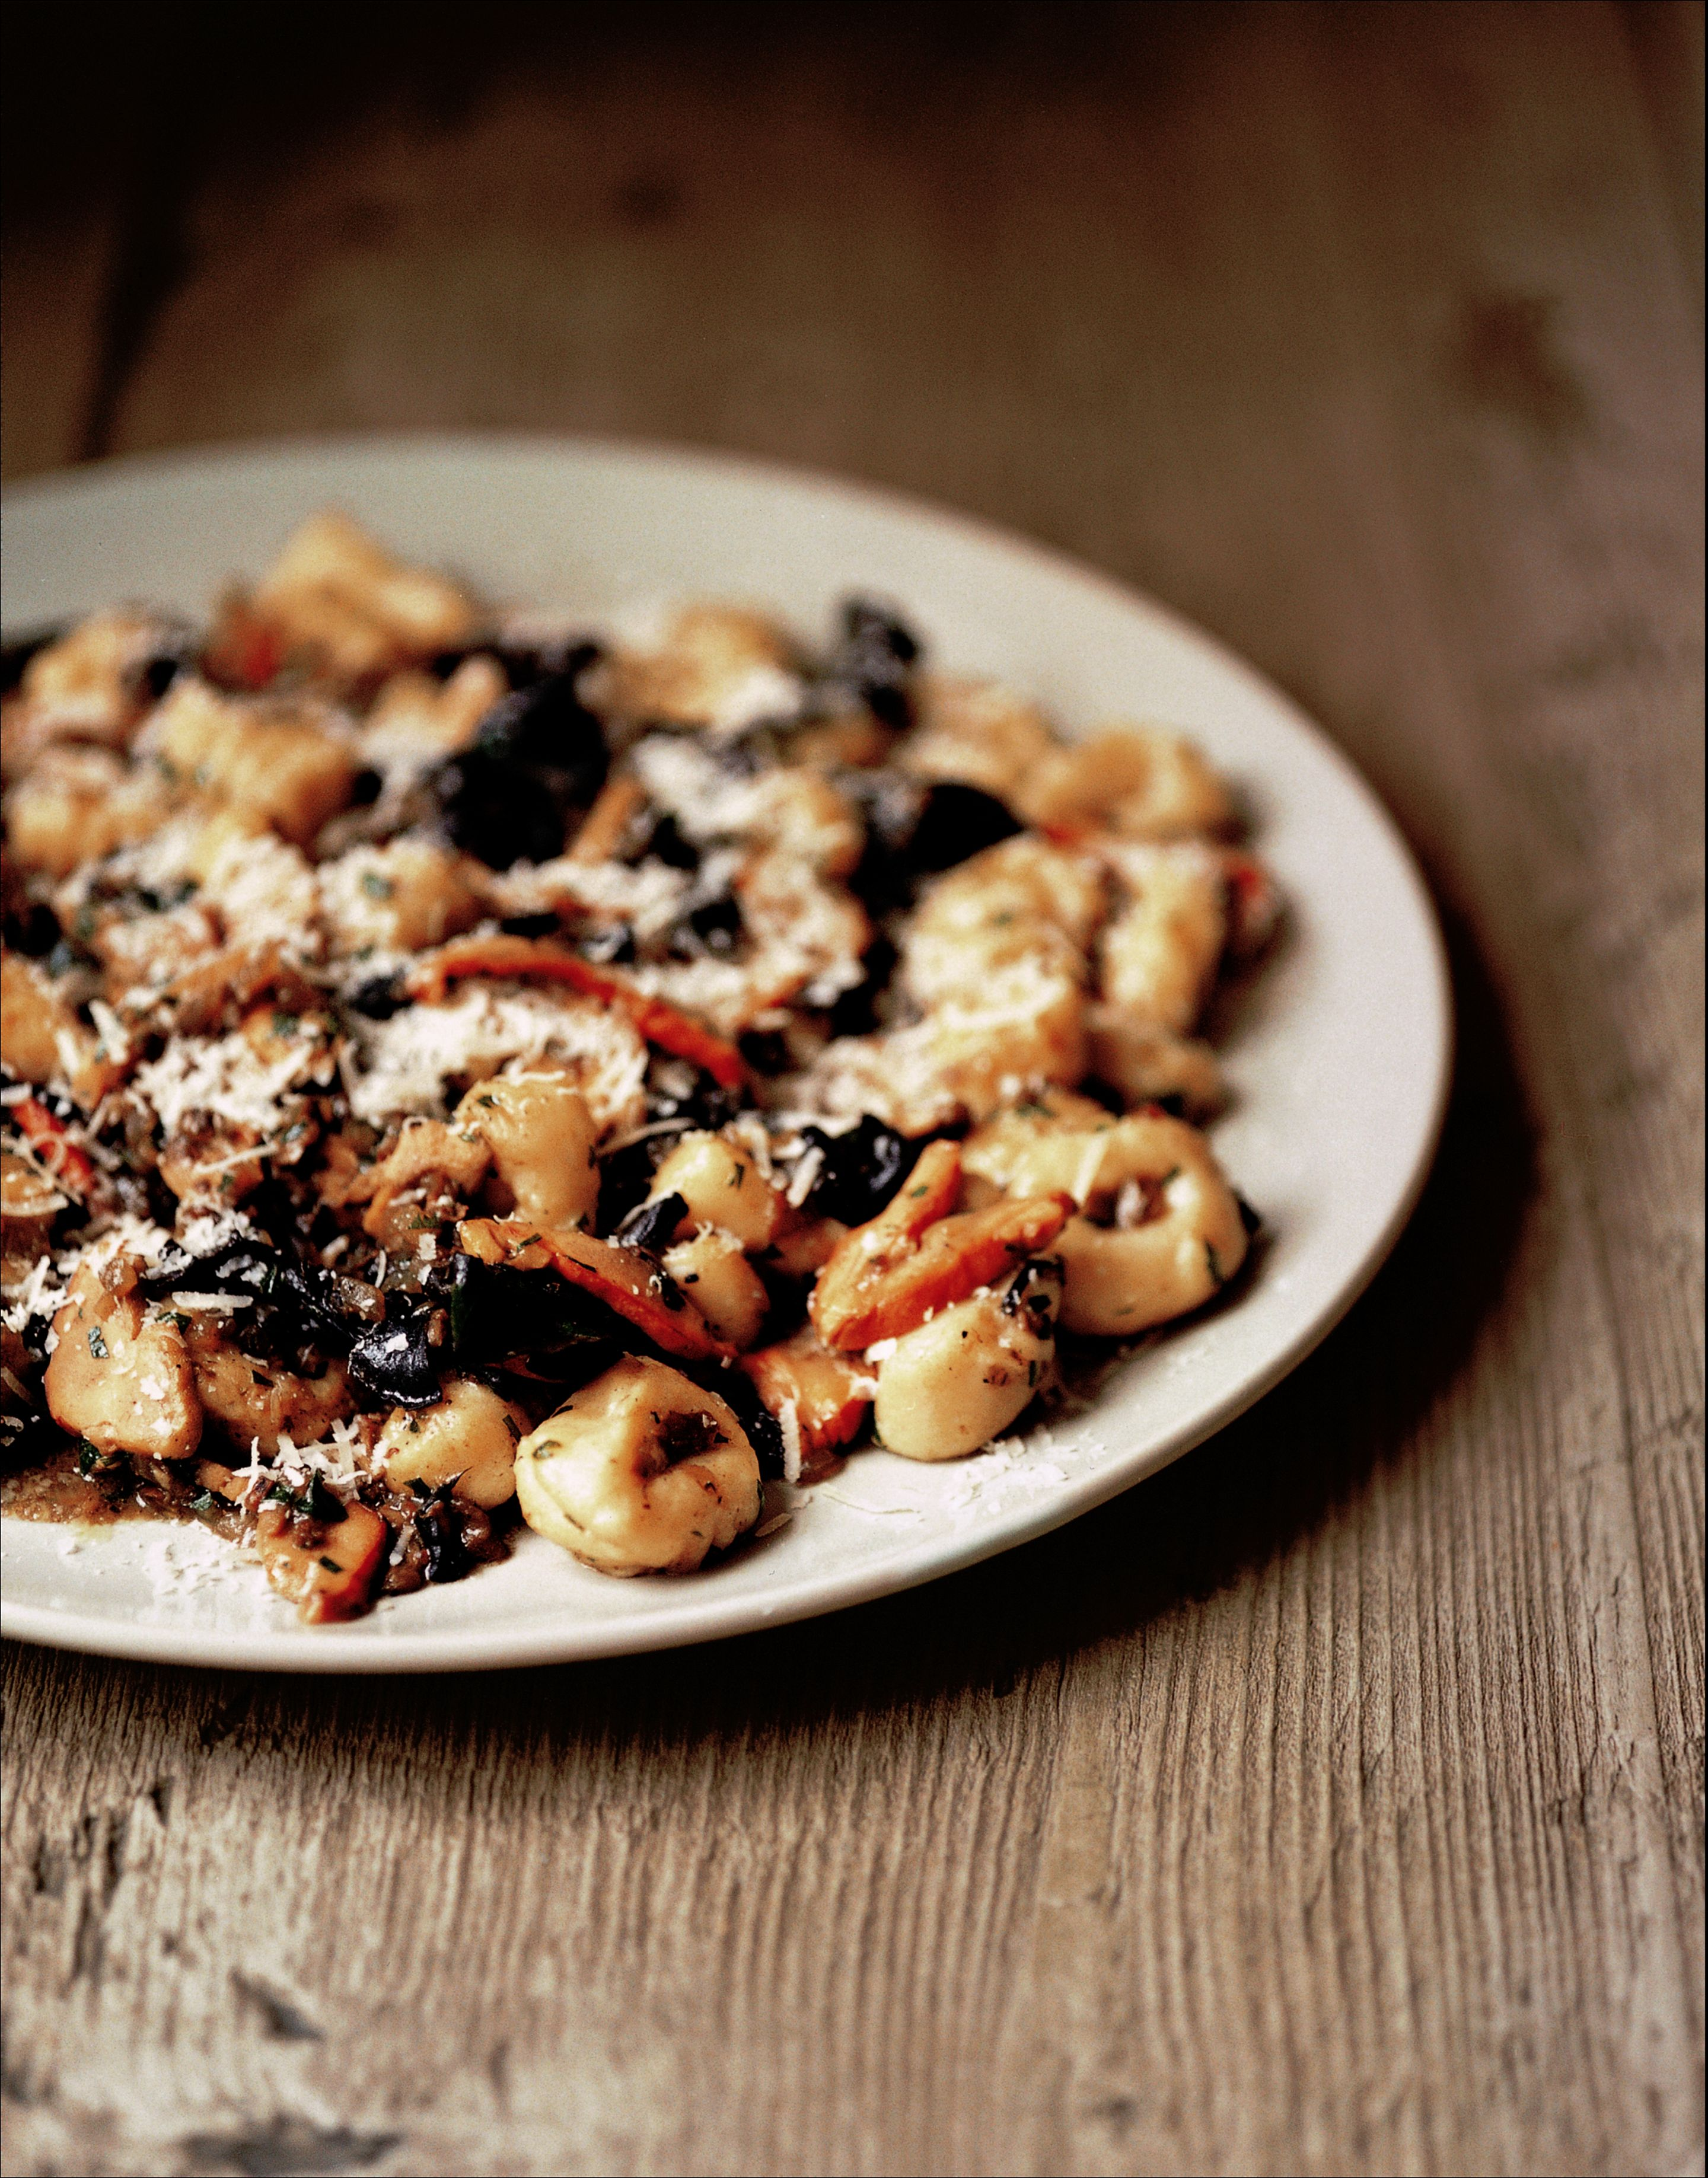 Gnocchi with horn of plenty and chicken of the woods